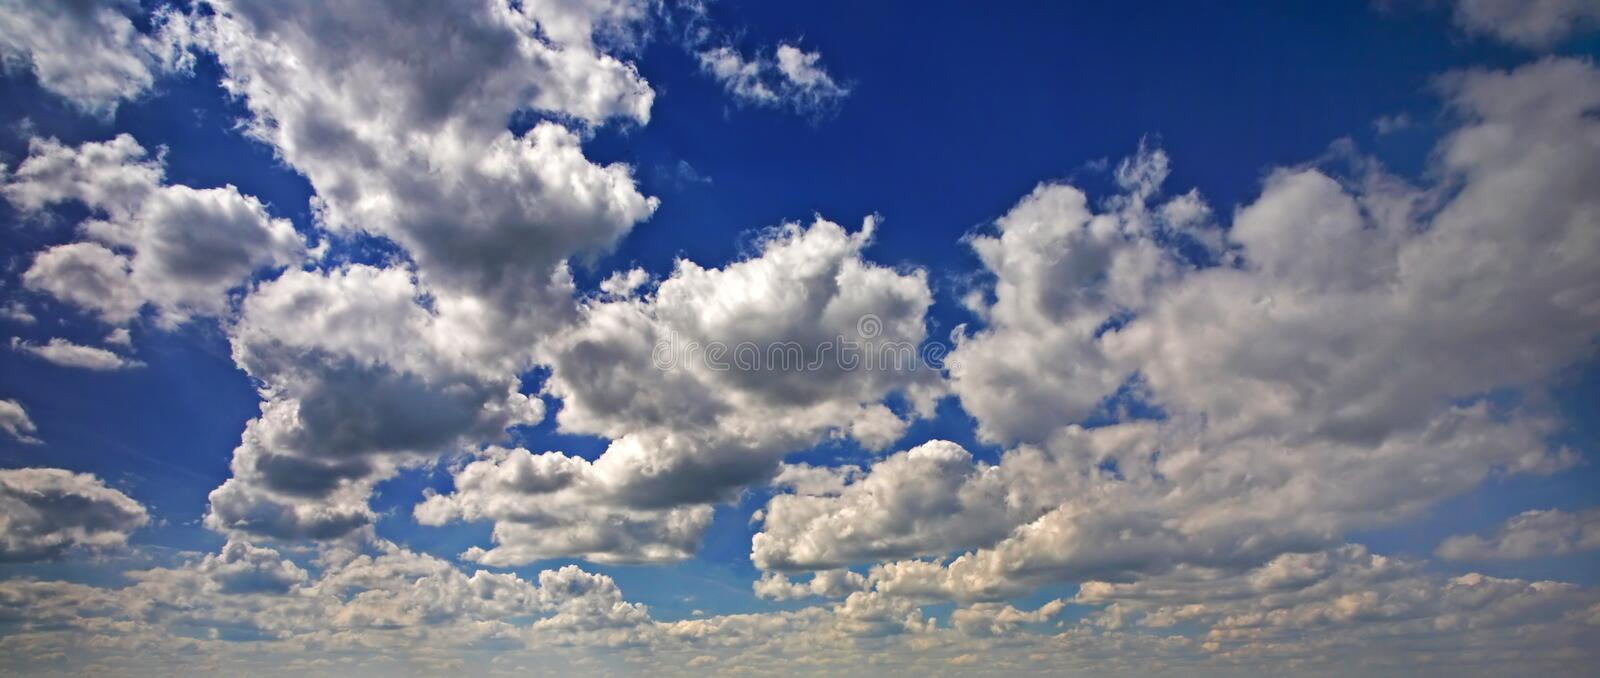 Download Cloudscape stock photo. Image of cloudy, panoramic, blue - 2684676